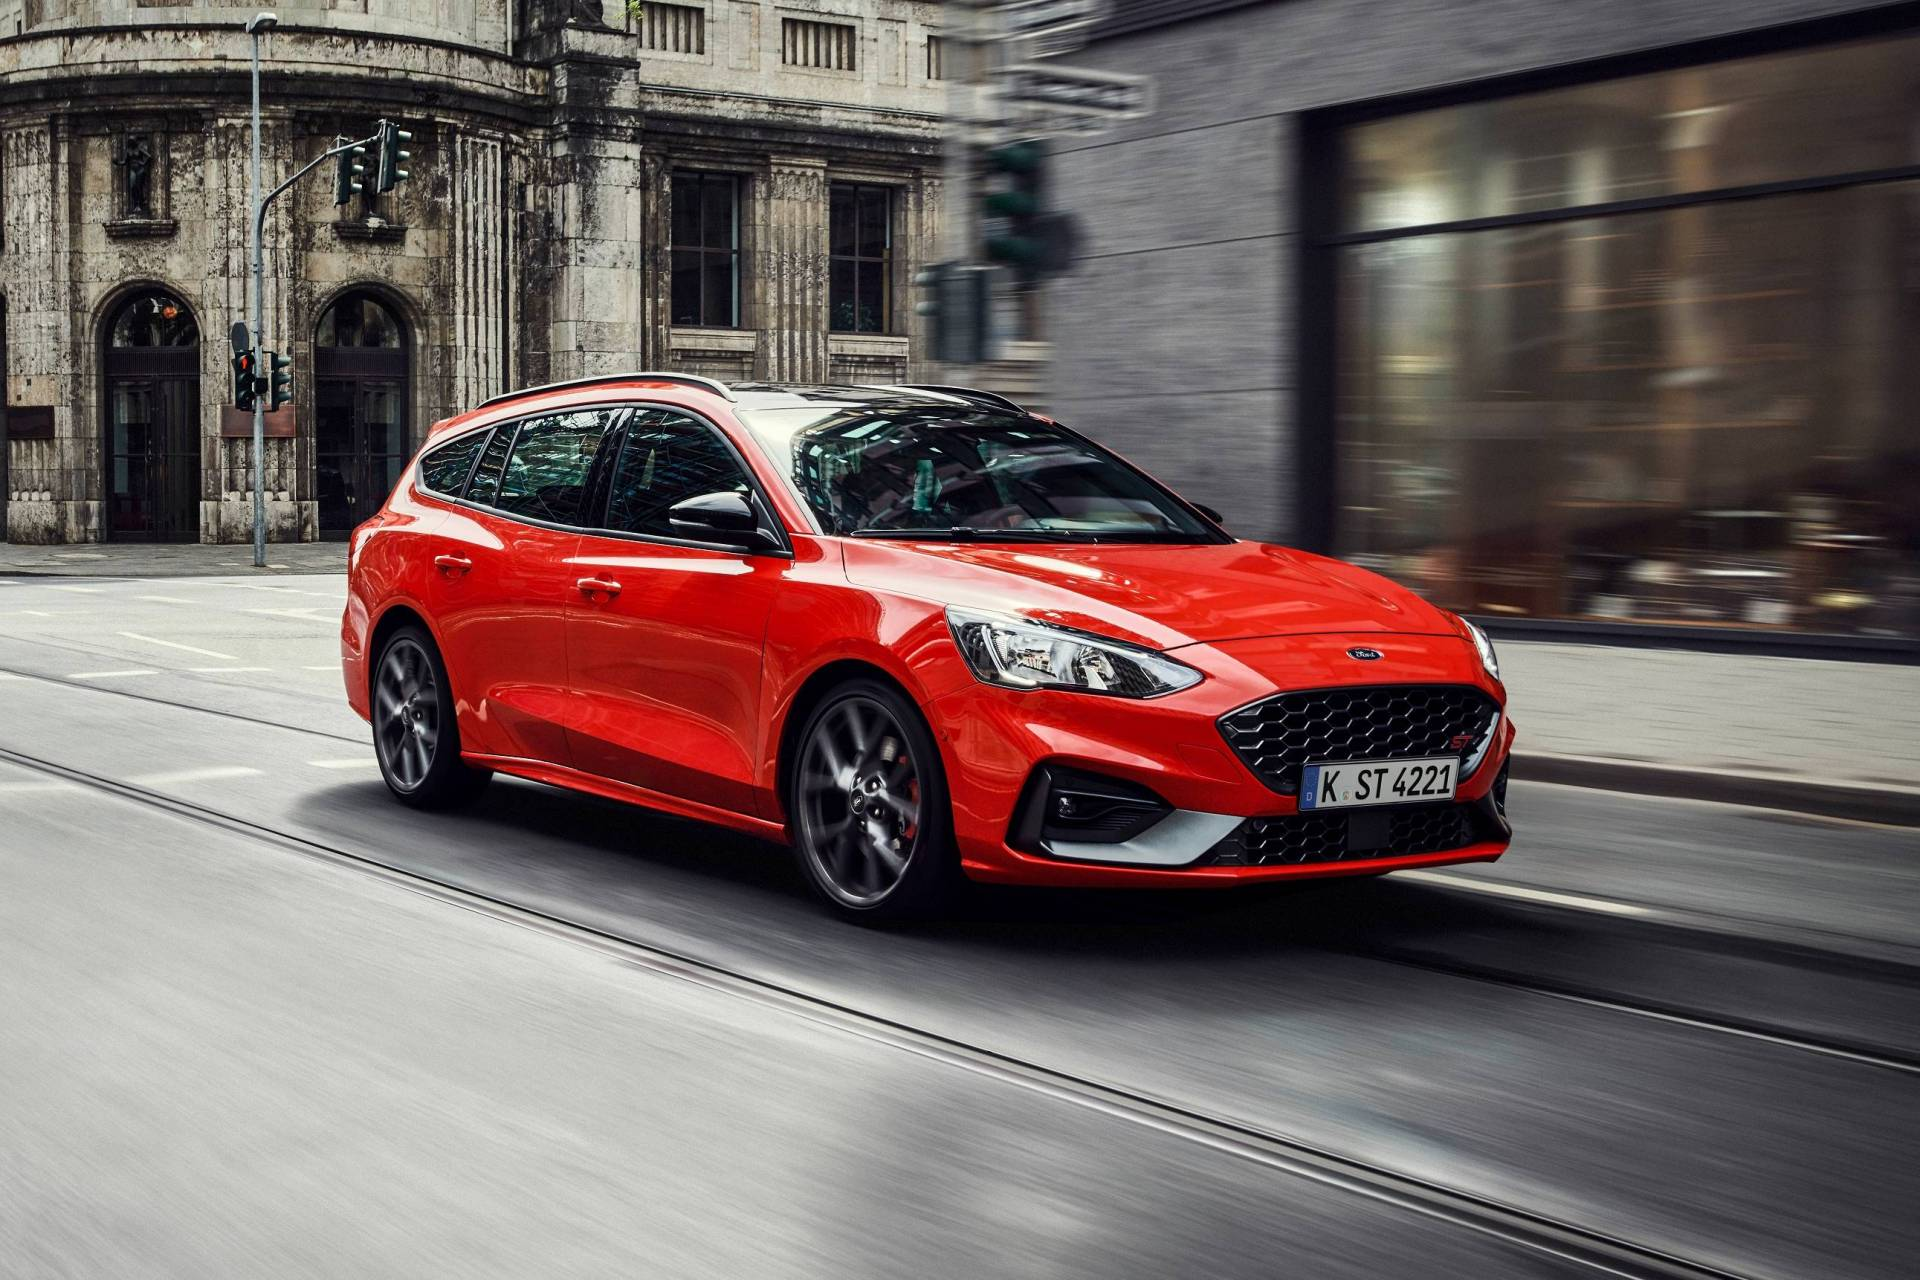 f8b23dc1-2019my-ford-focus-st-wagon-4